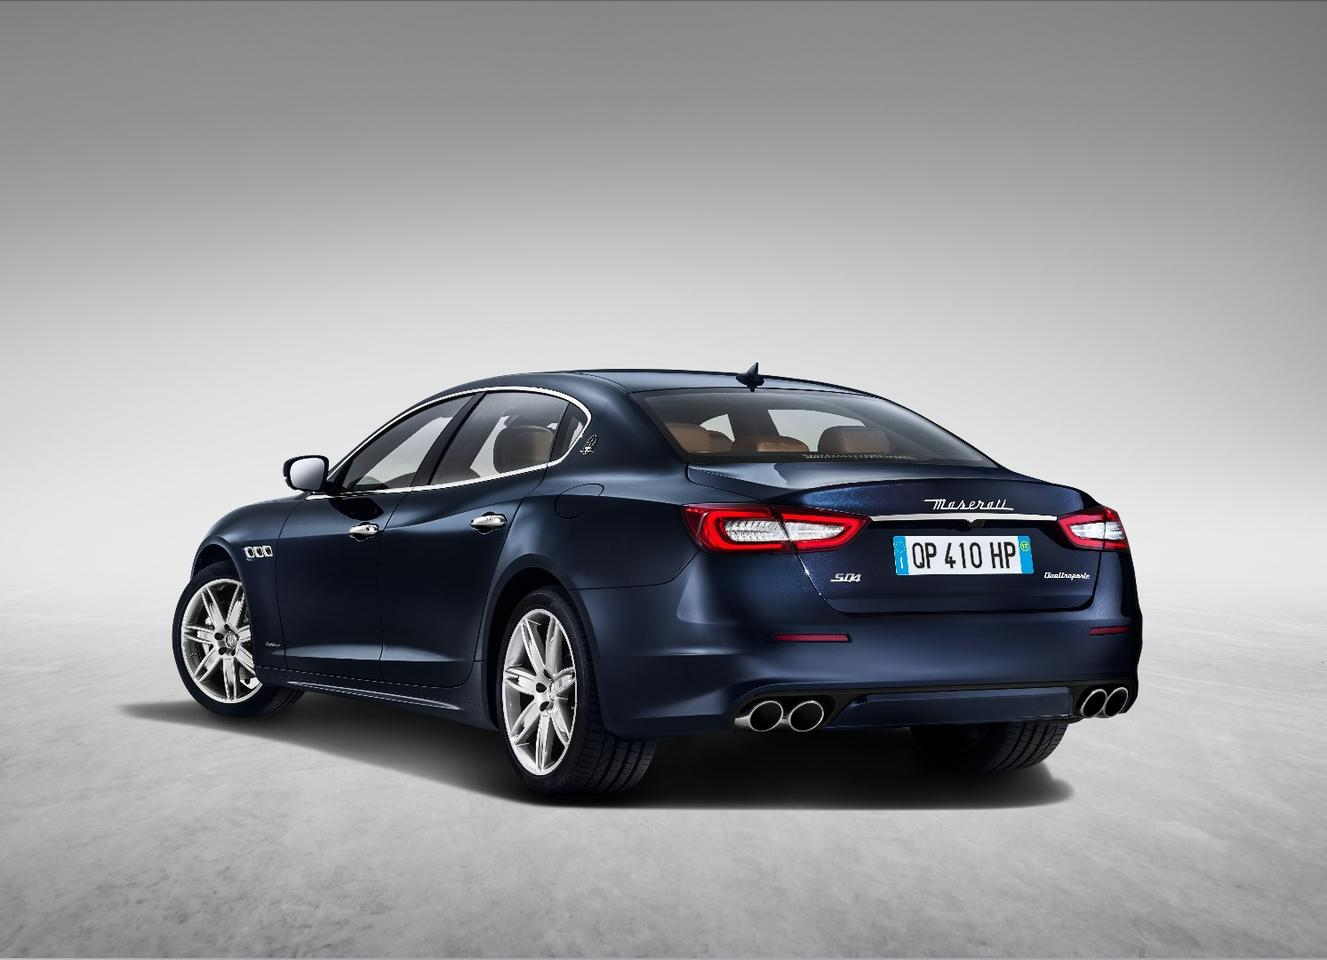 The new MaseratiQuattroporte has been subtly restyled outside